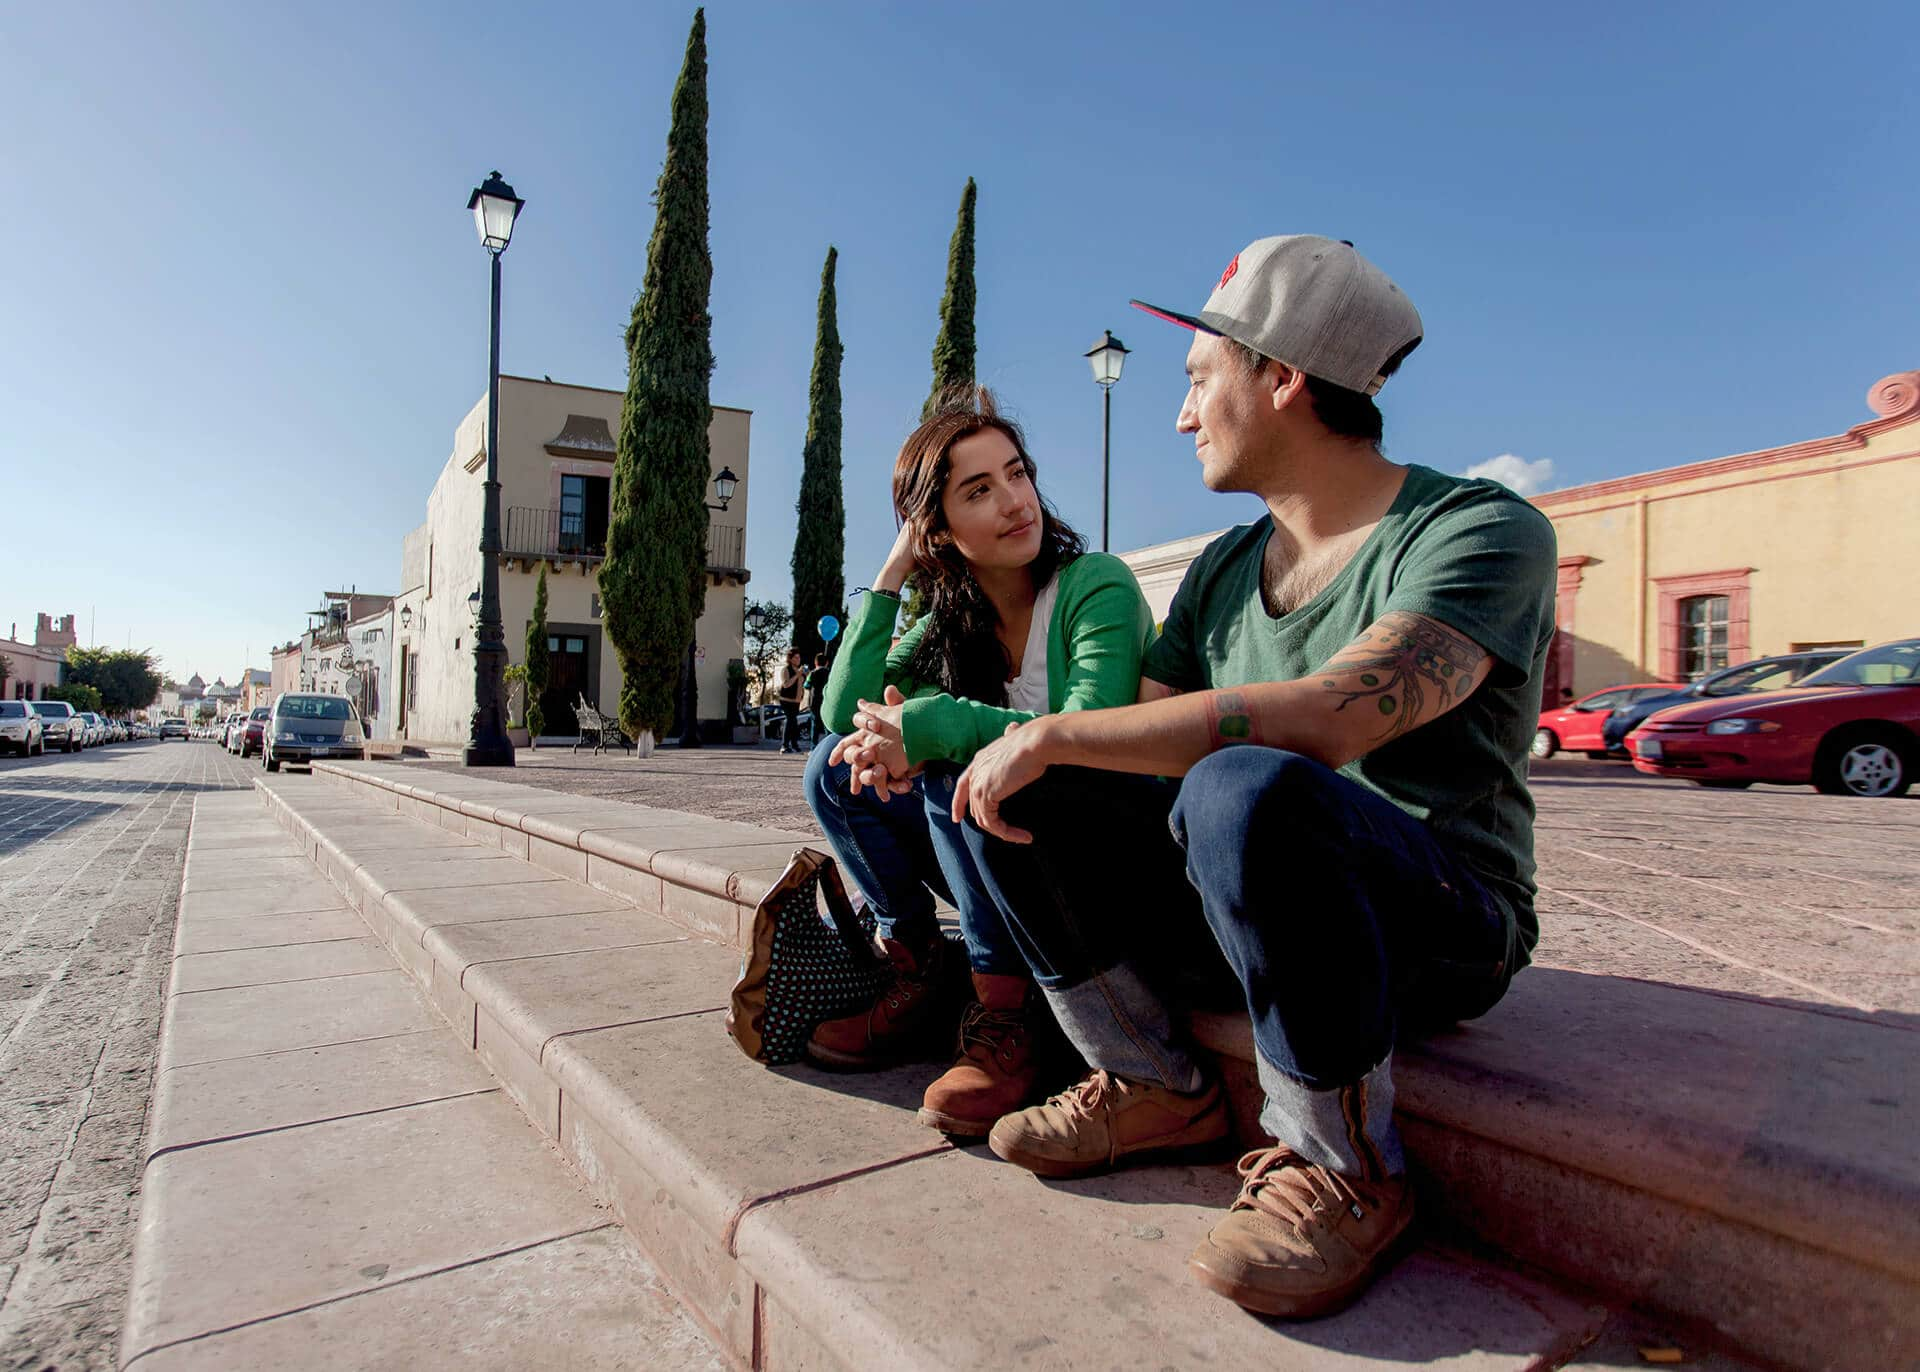 young couple sitting on a curb chatting